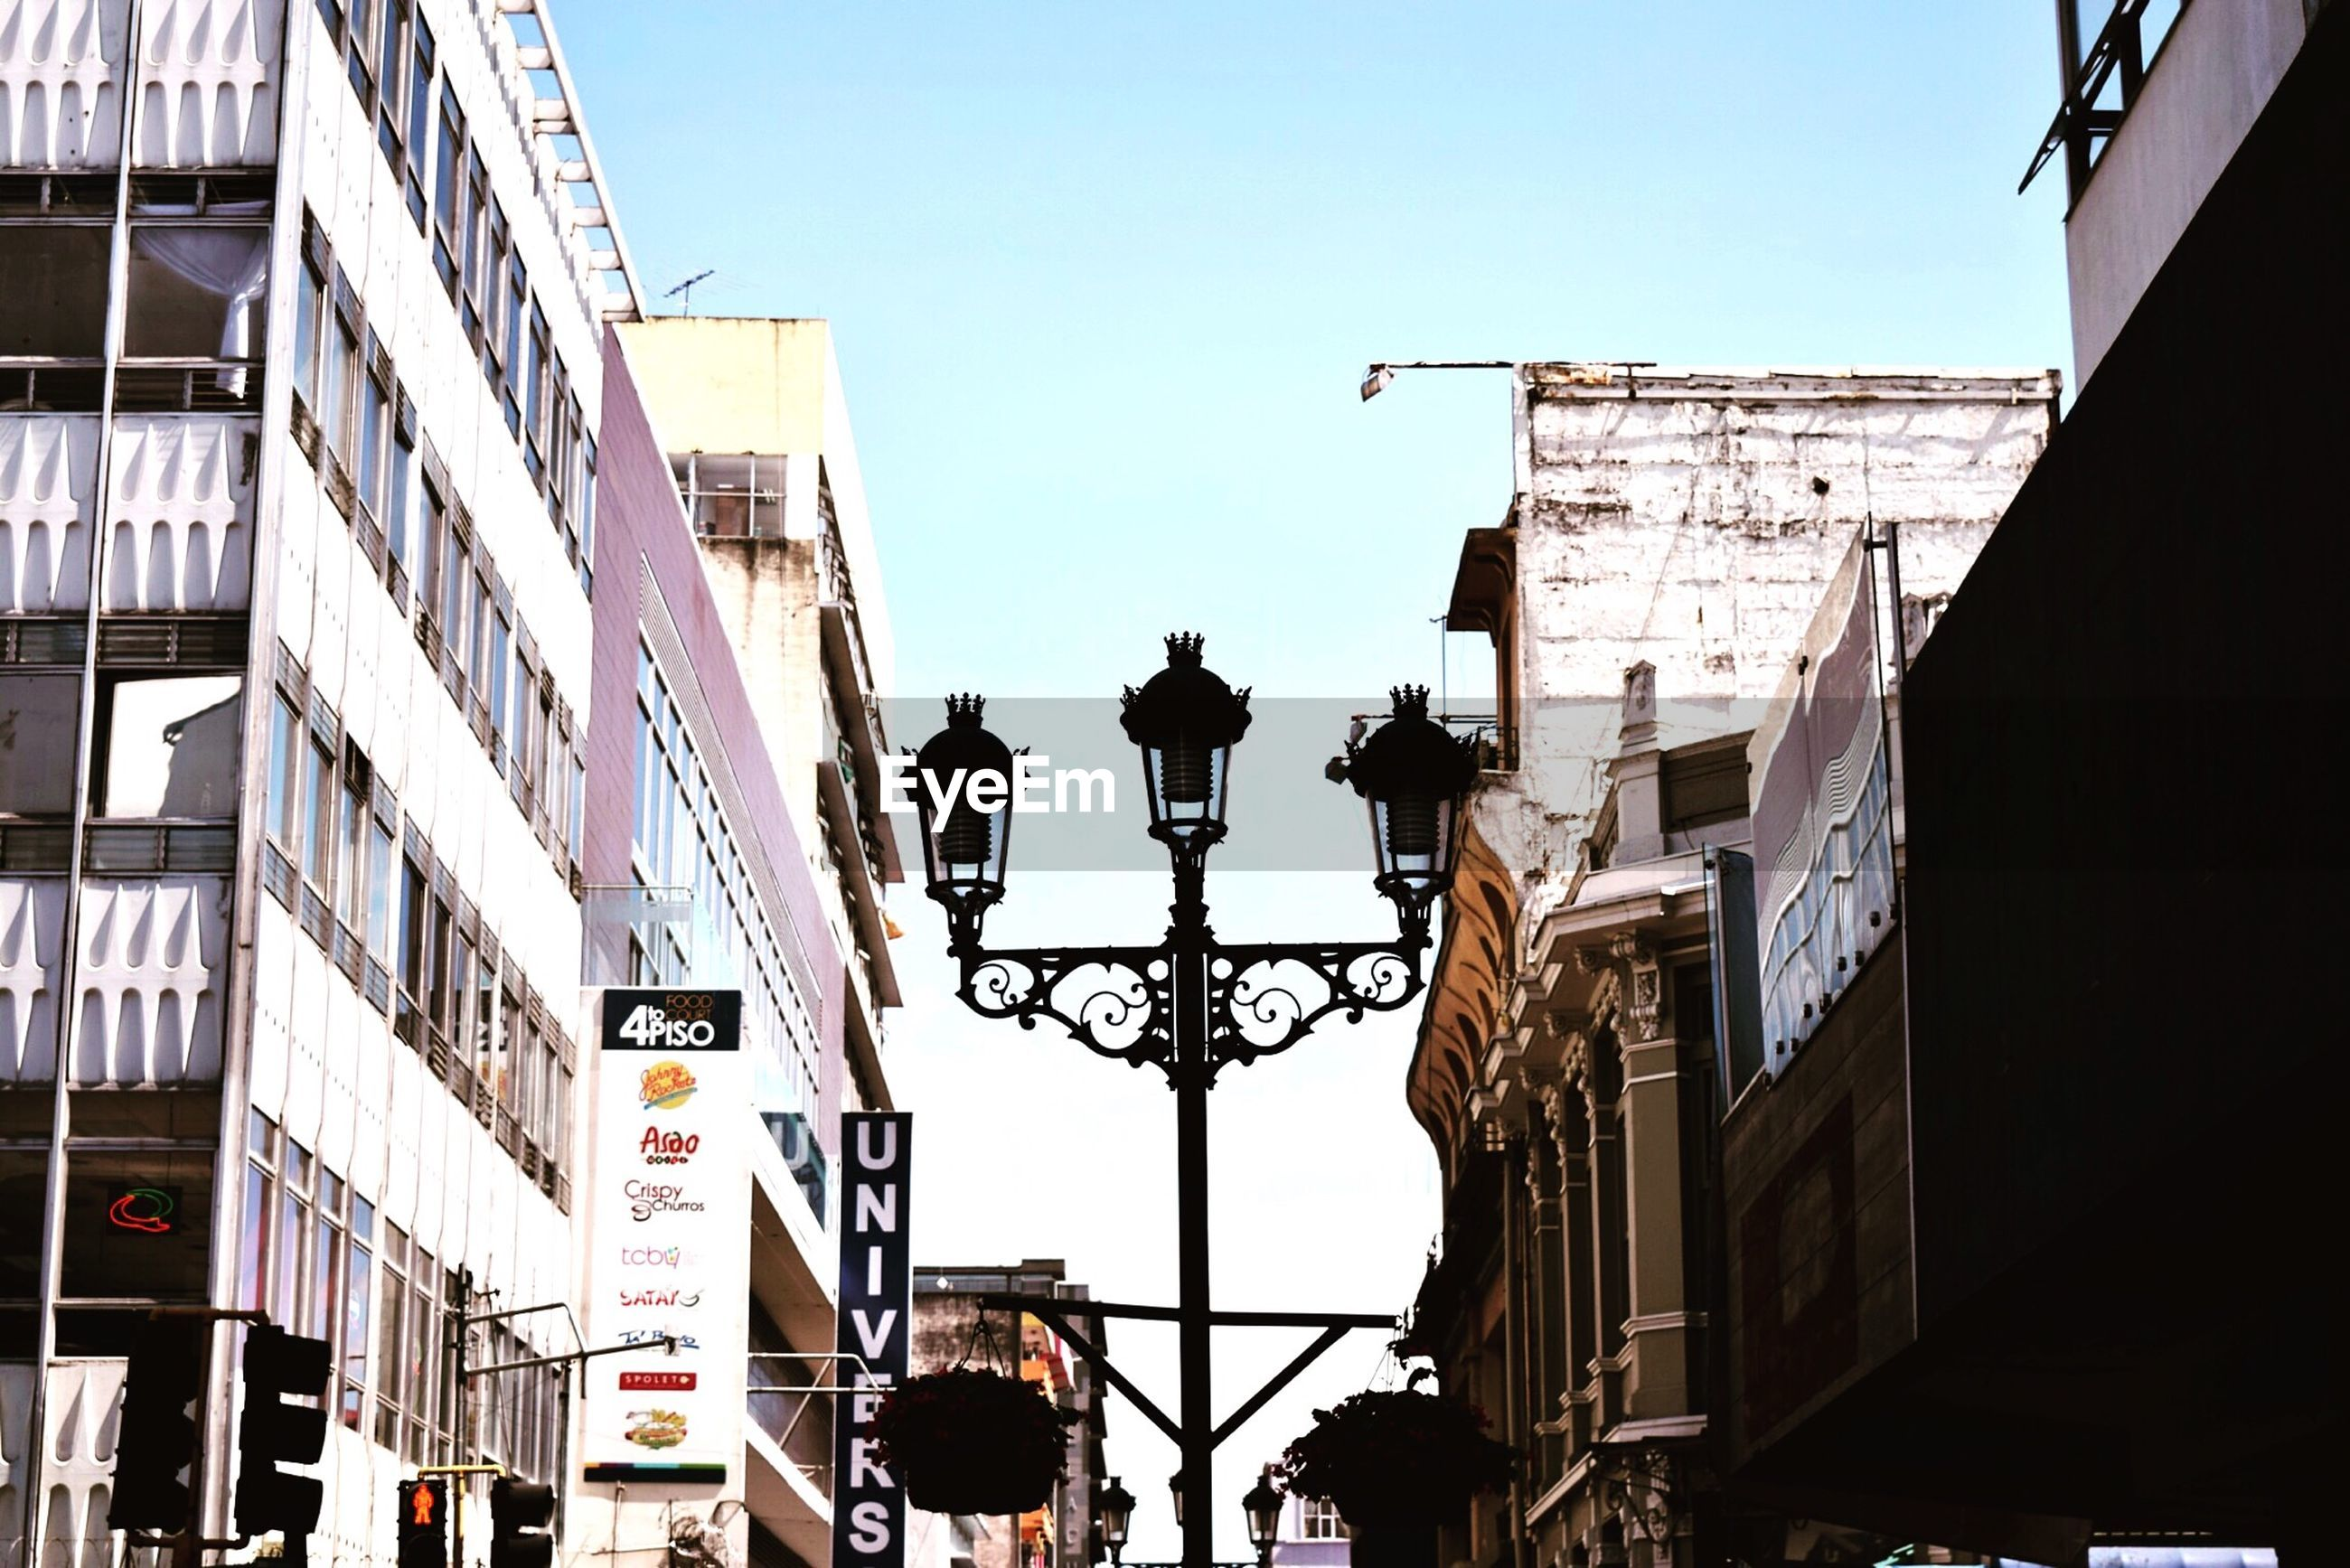 building exterior, architecture, built structure, low angle view, clear sky, building, city, street light, residential building, residential structure, window, sky, day, power line, outdoors, city life, silhouette, cable, no people, balcony